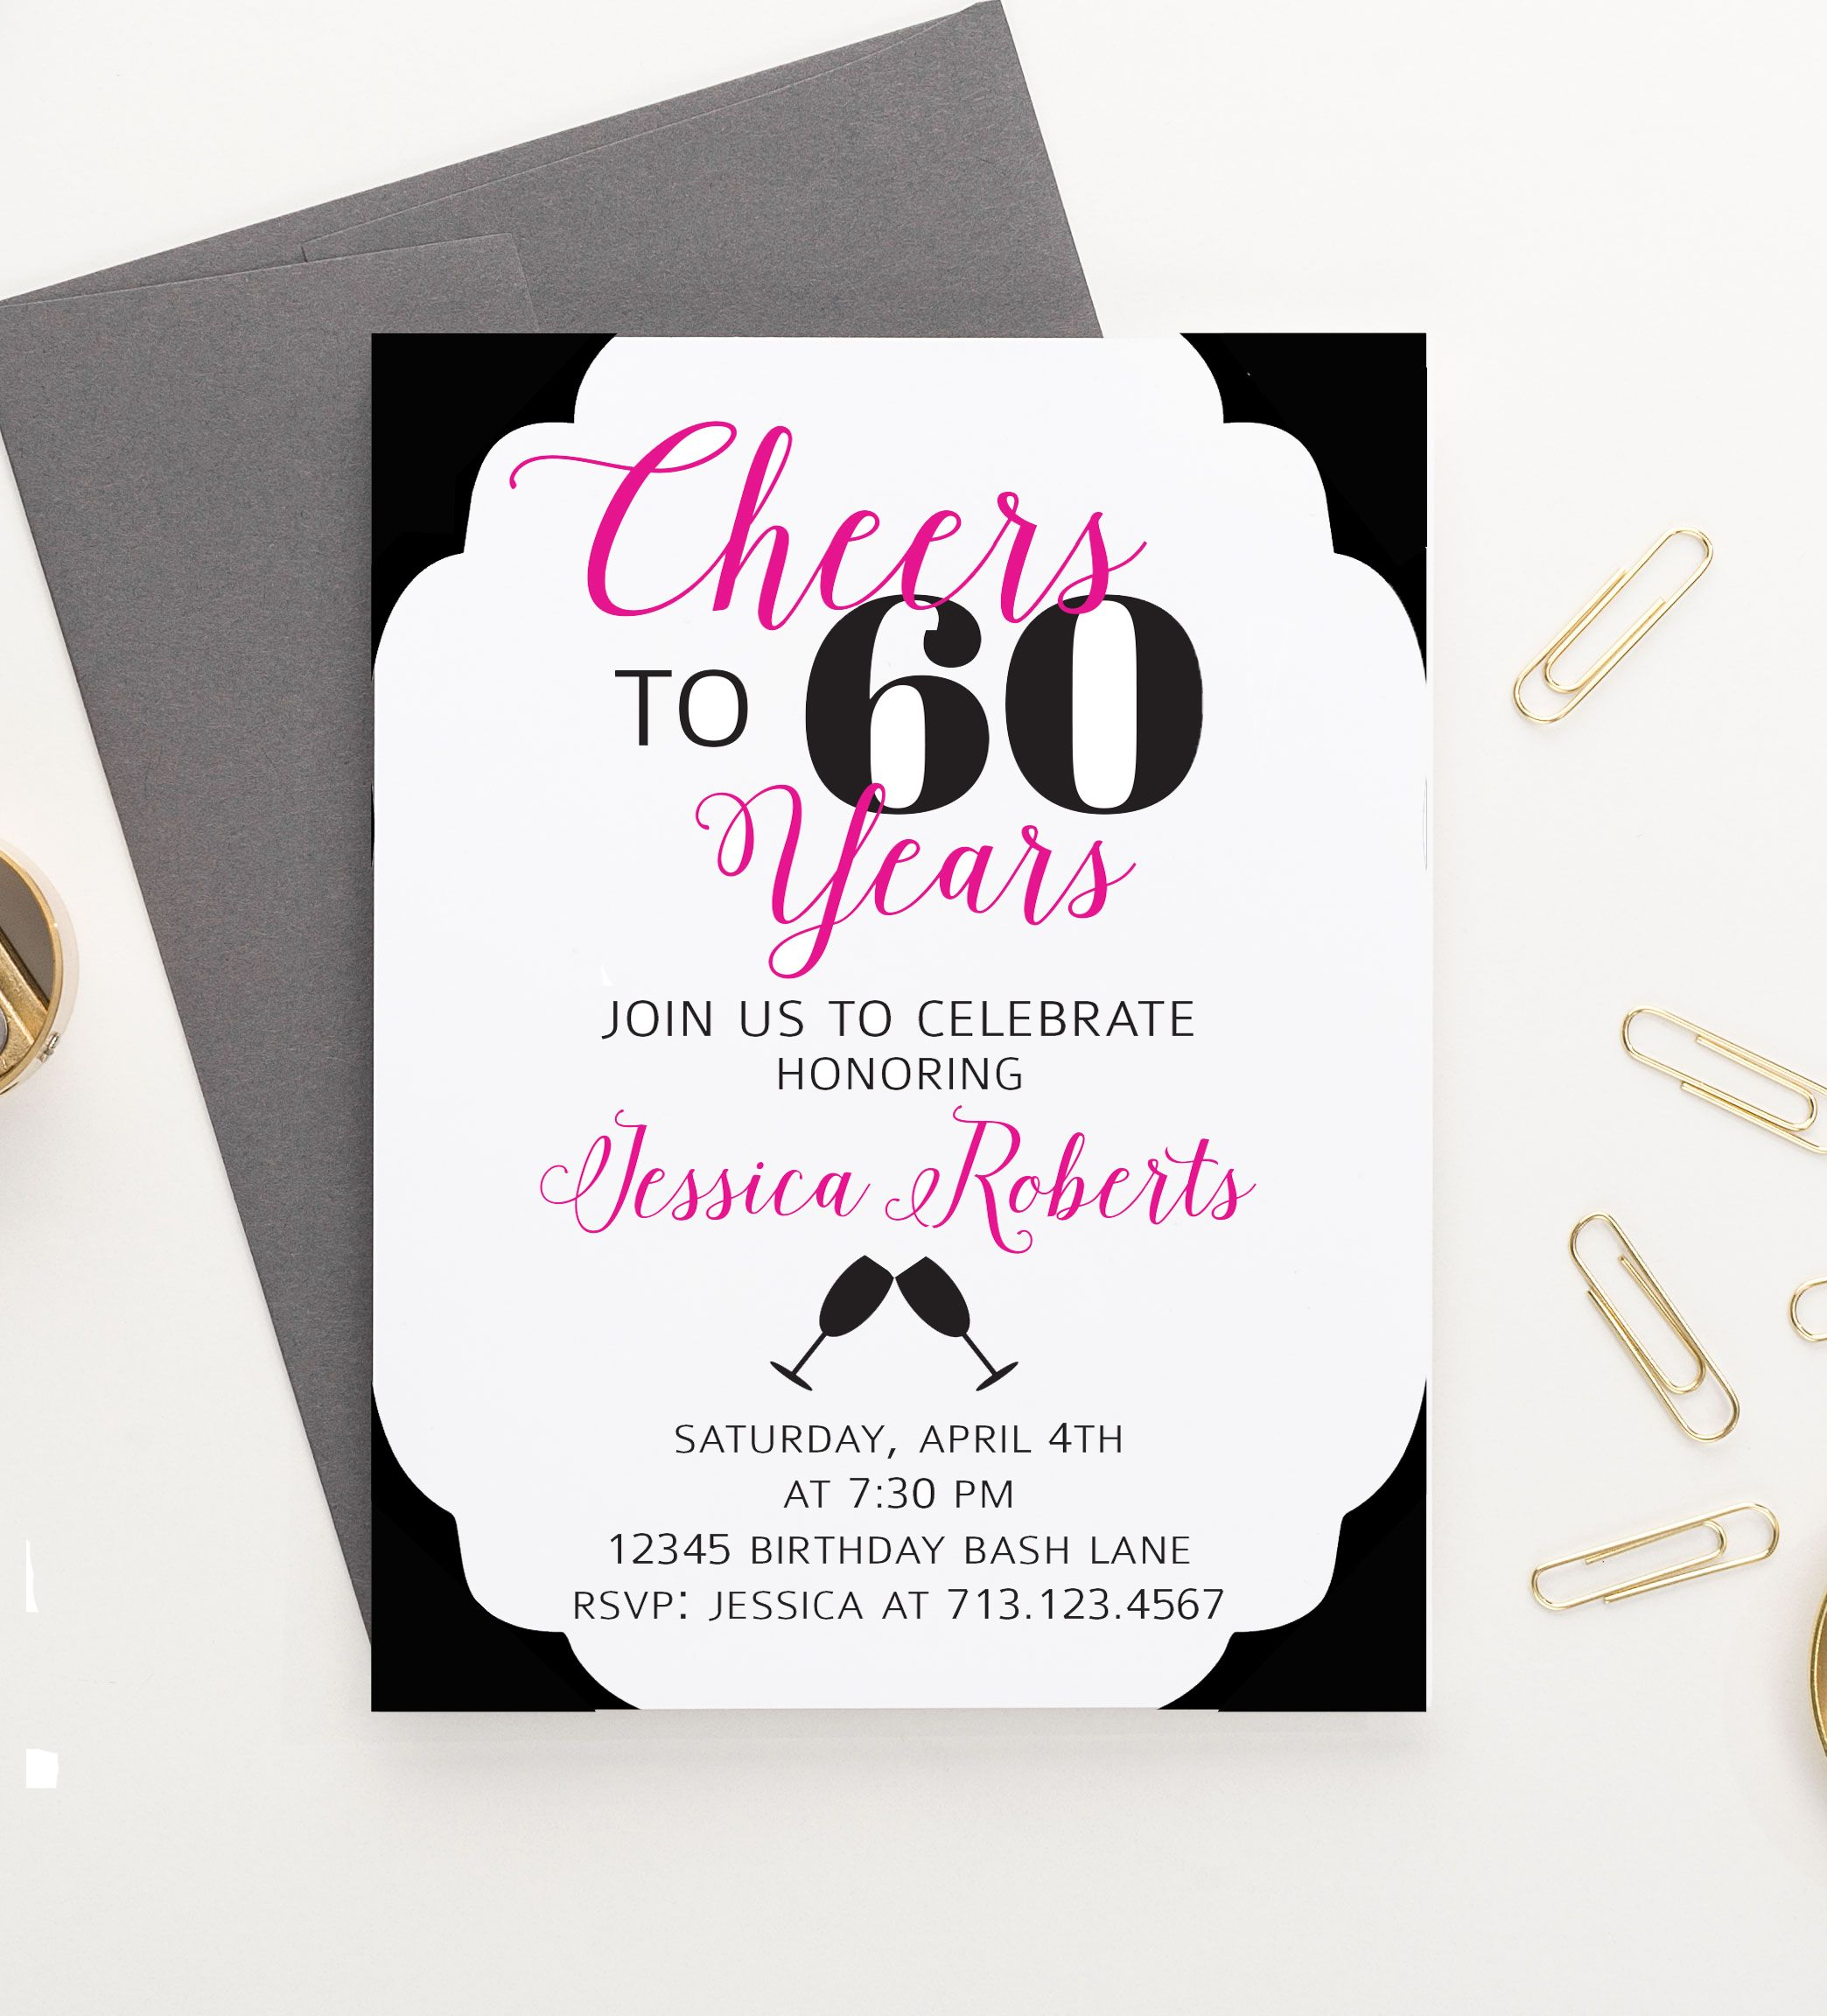 Cheers to 60 years birthday invitations milestone birthday party cheers to 60 years birthday invitations milestone birthday party invitations stopboris